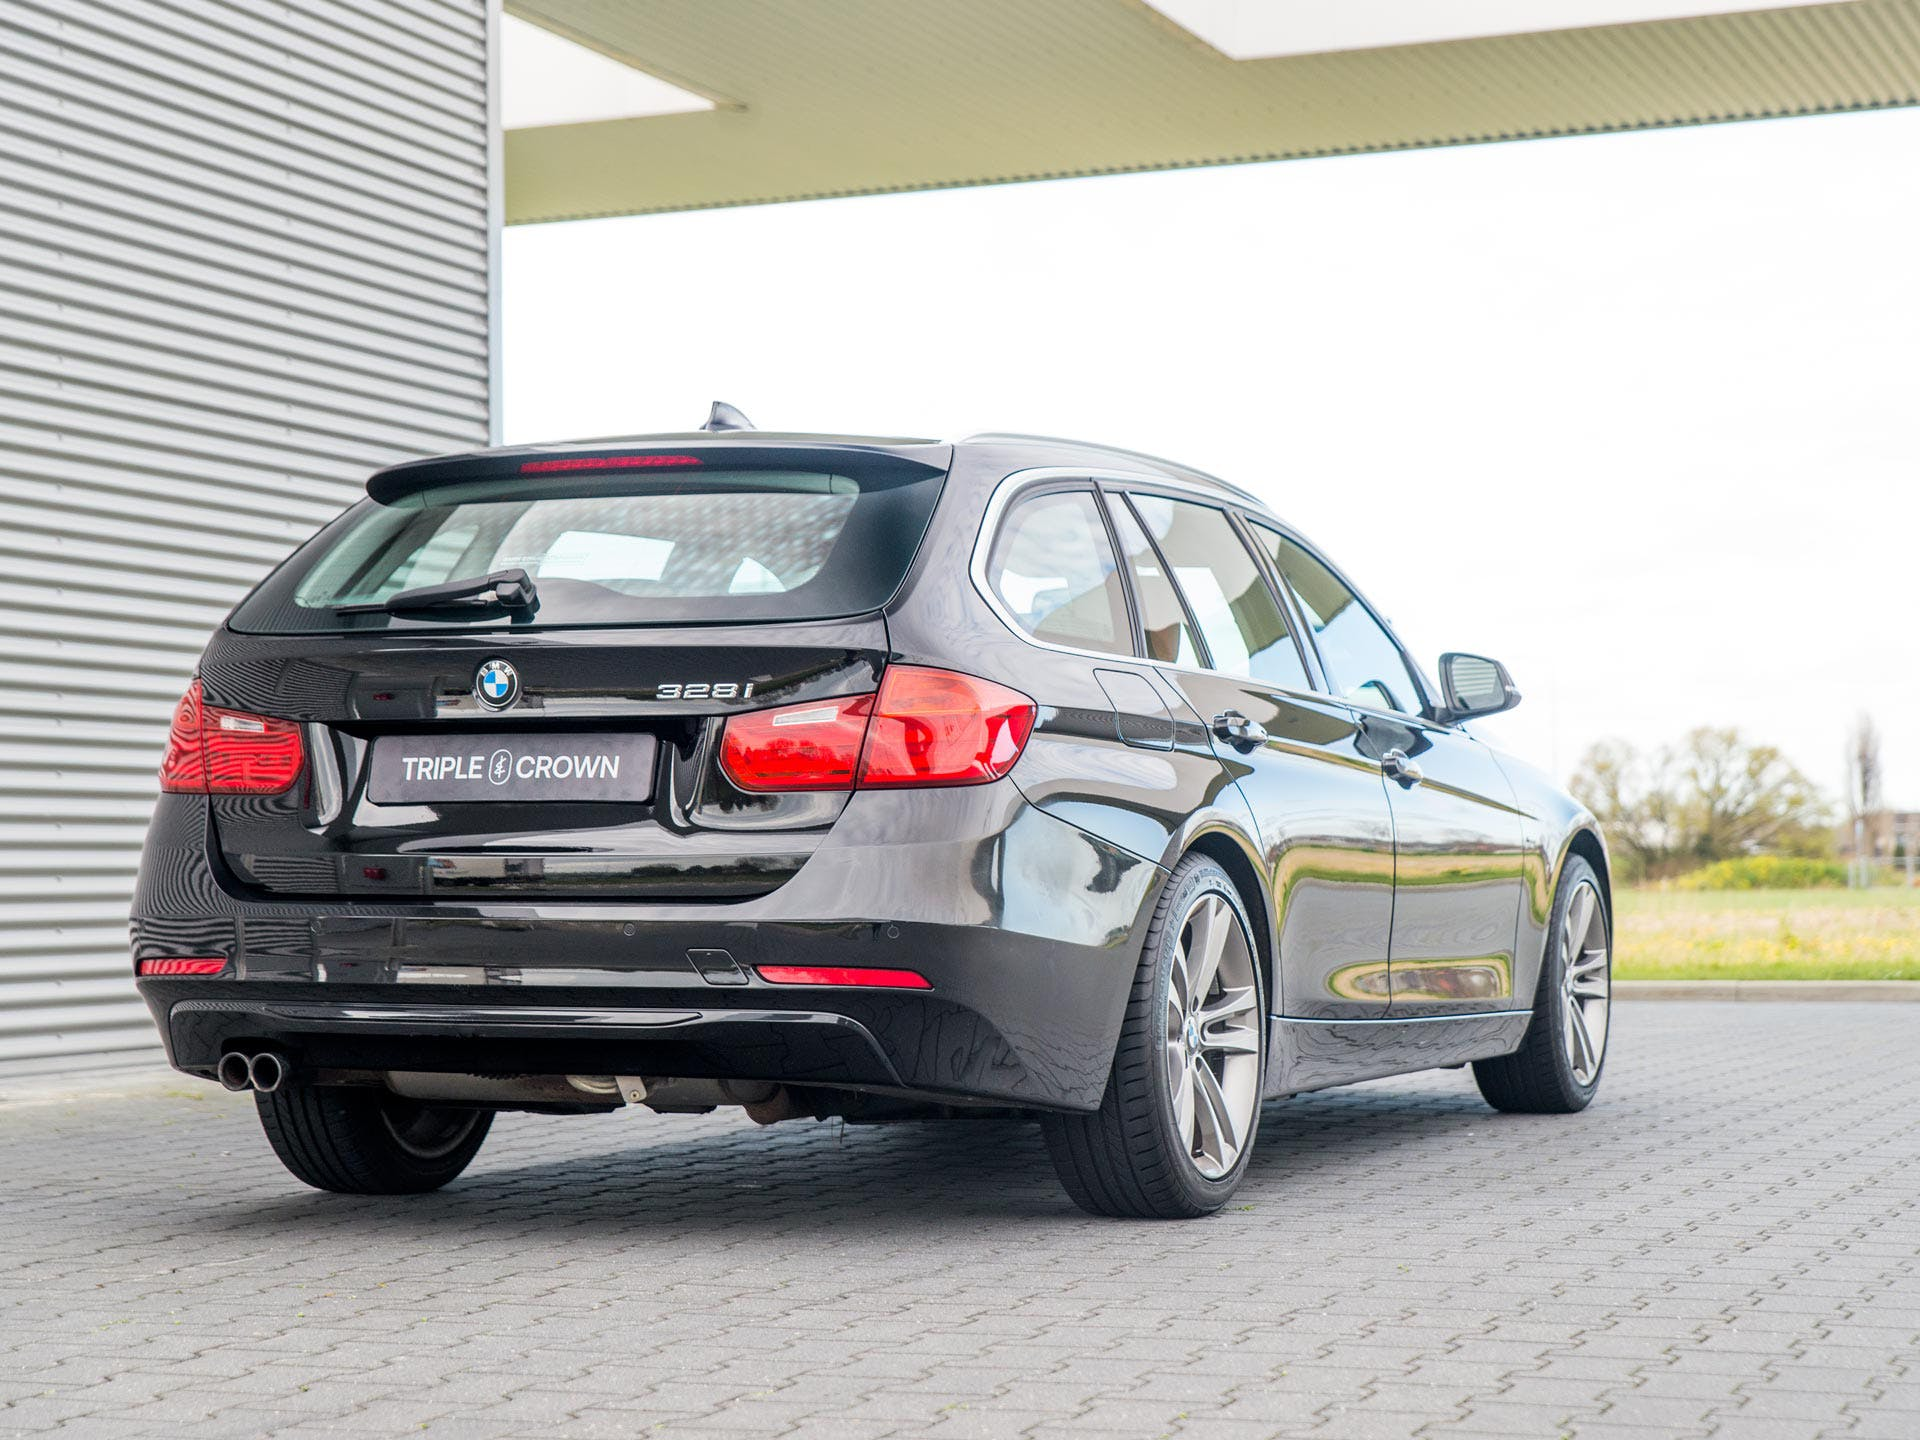 Tweedehands BMW 3 Serie Touring 328i occasion